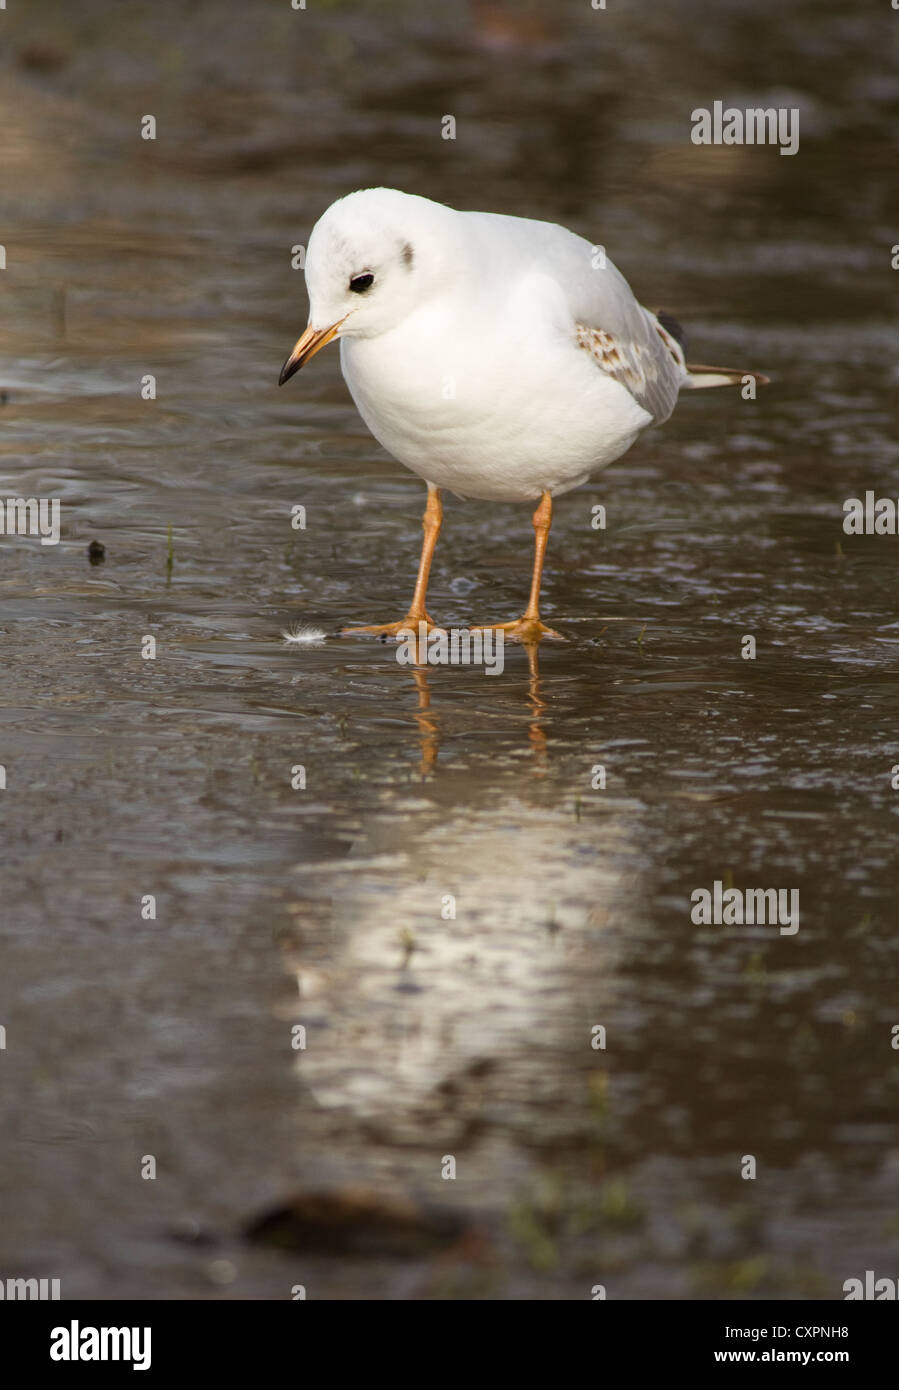 A Common Gull (Larus canus) in Hyde Park, London - Stock Image